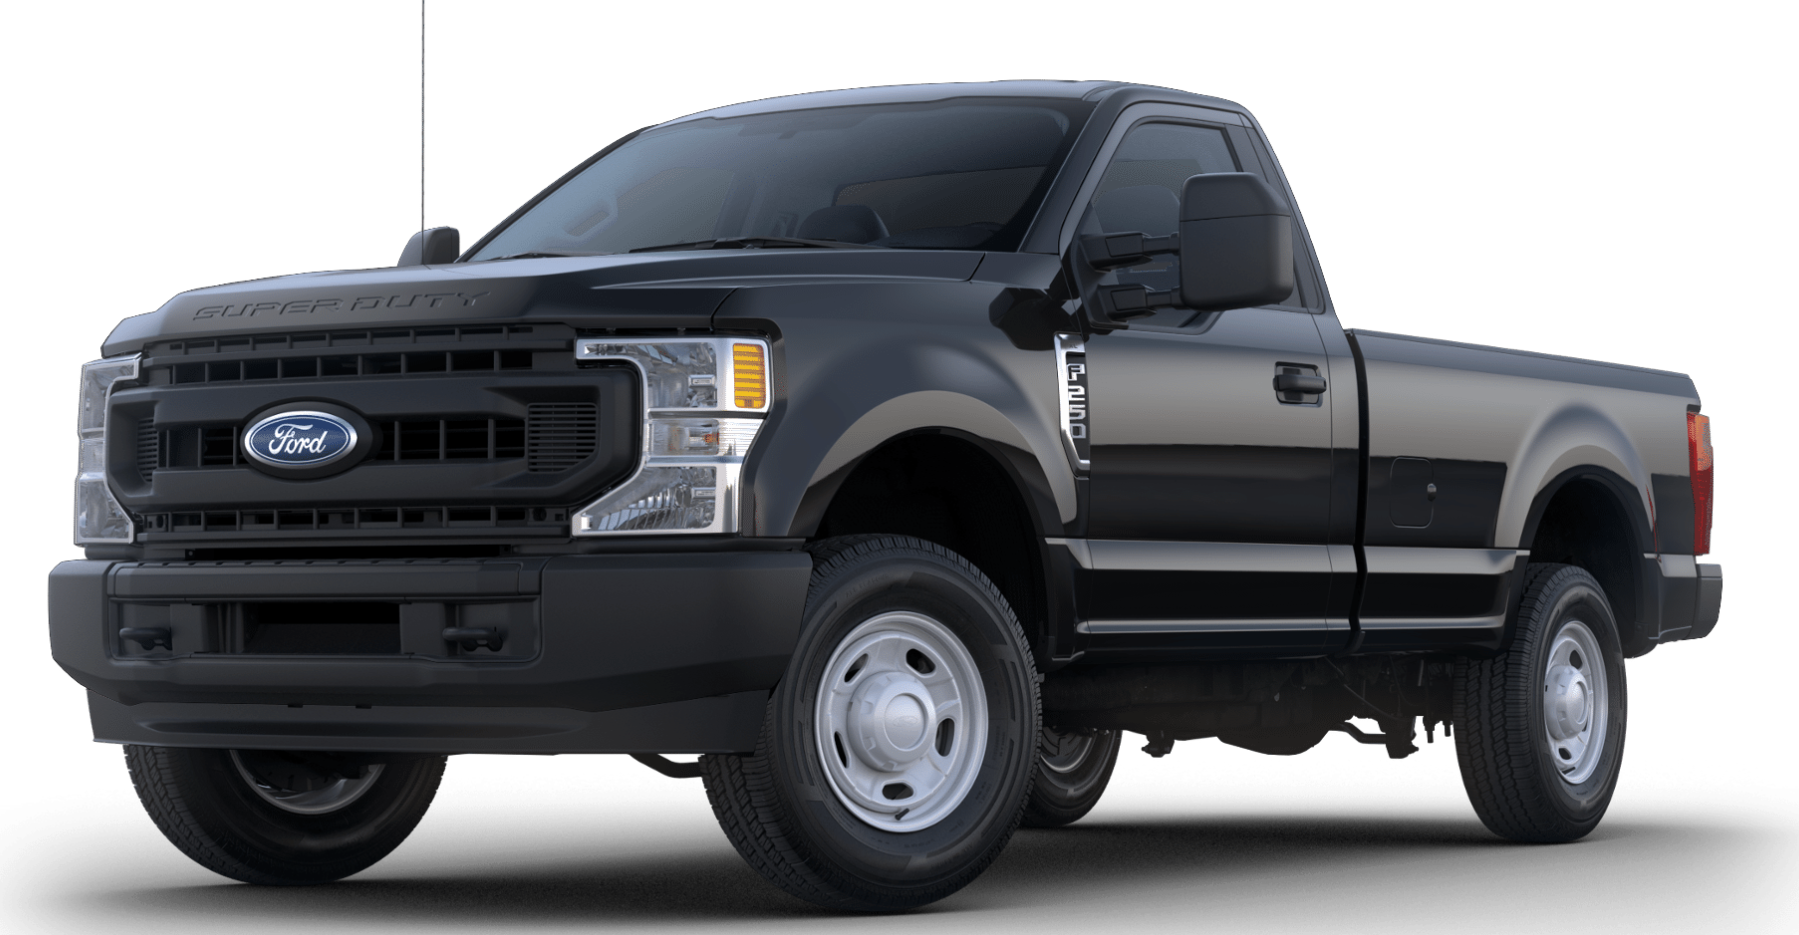 2020 Ford Super Duty F-250 Front Black Exterior